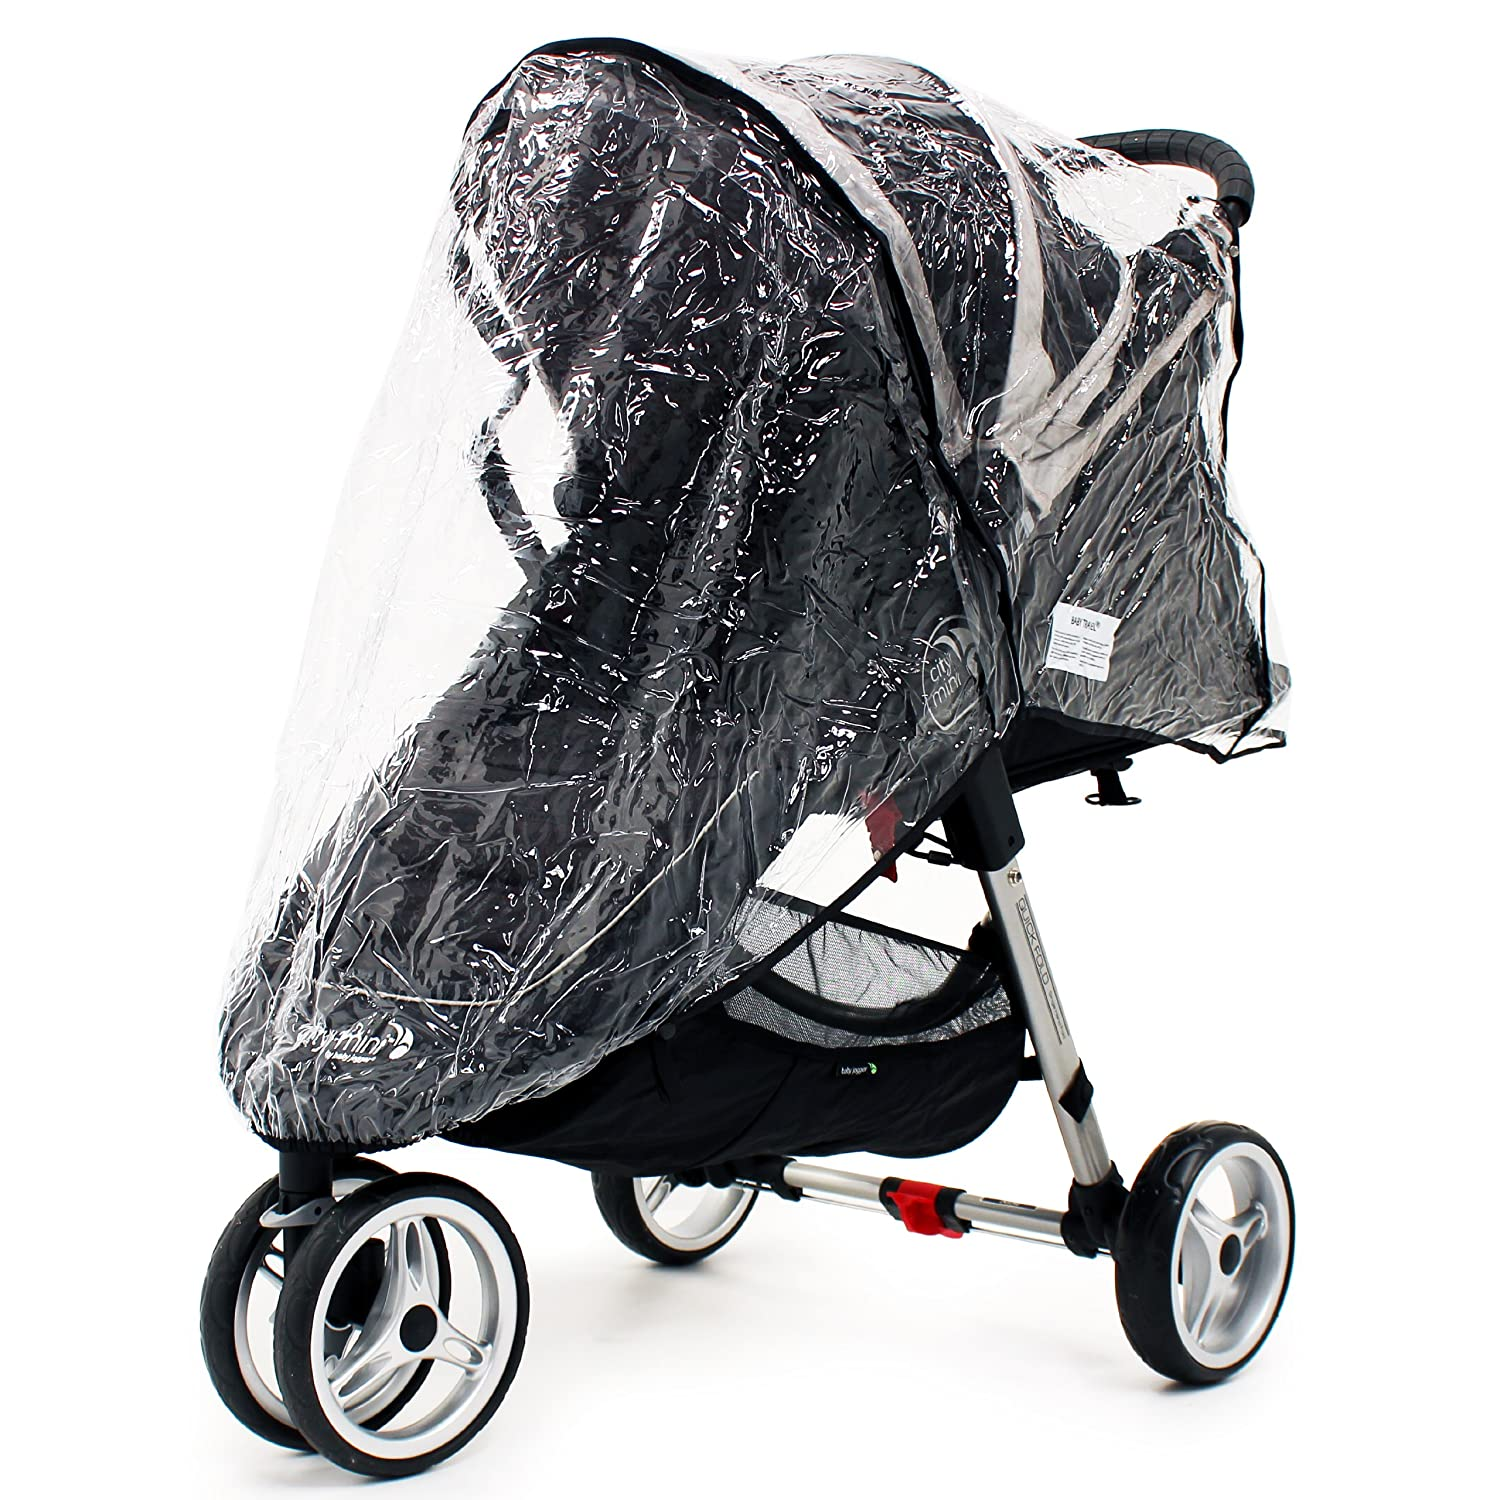 BABY JOGGER CITY MINI MICRO SINGLE RAIN COVER ZIPPED WEATHER SHIELD 1Stopbabystore